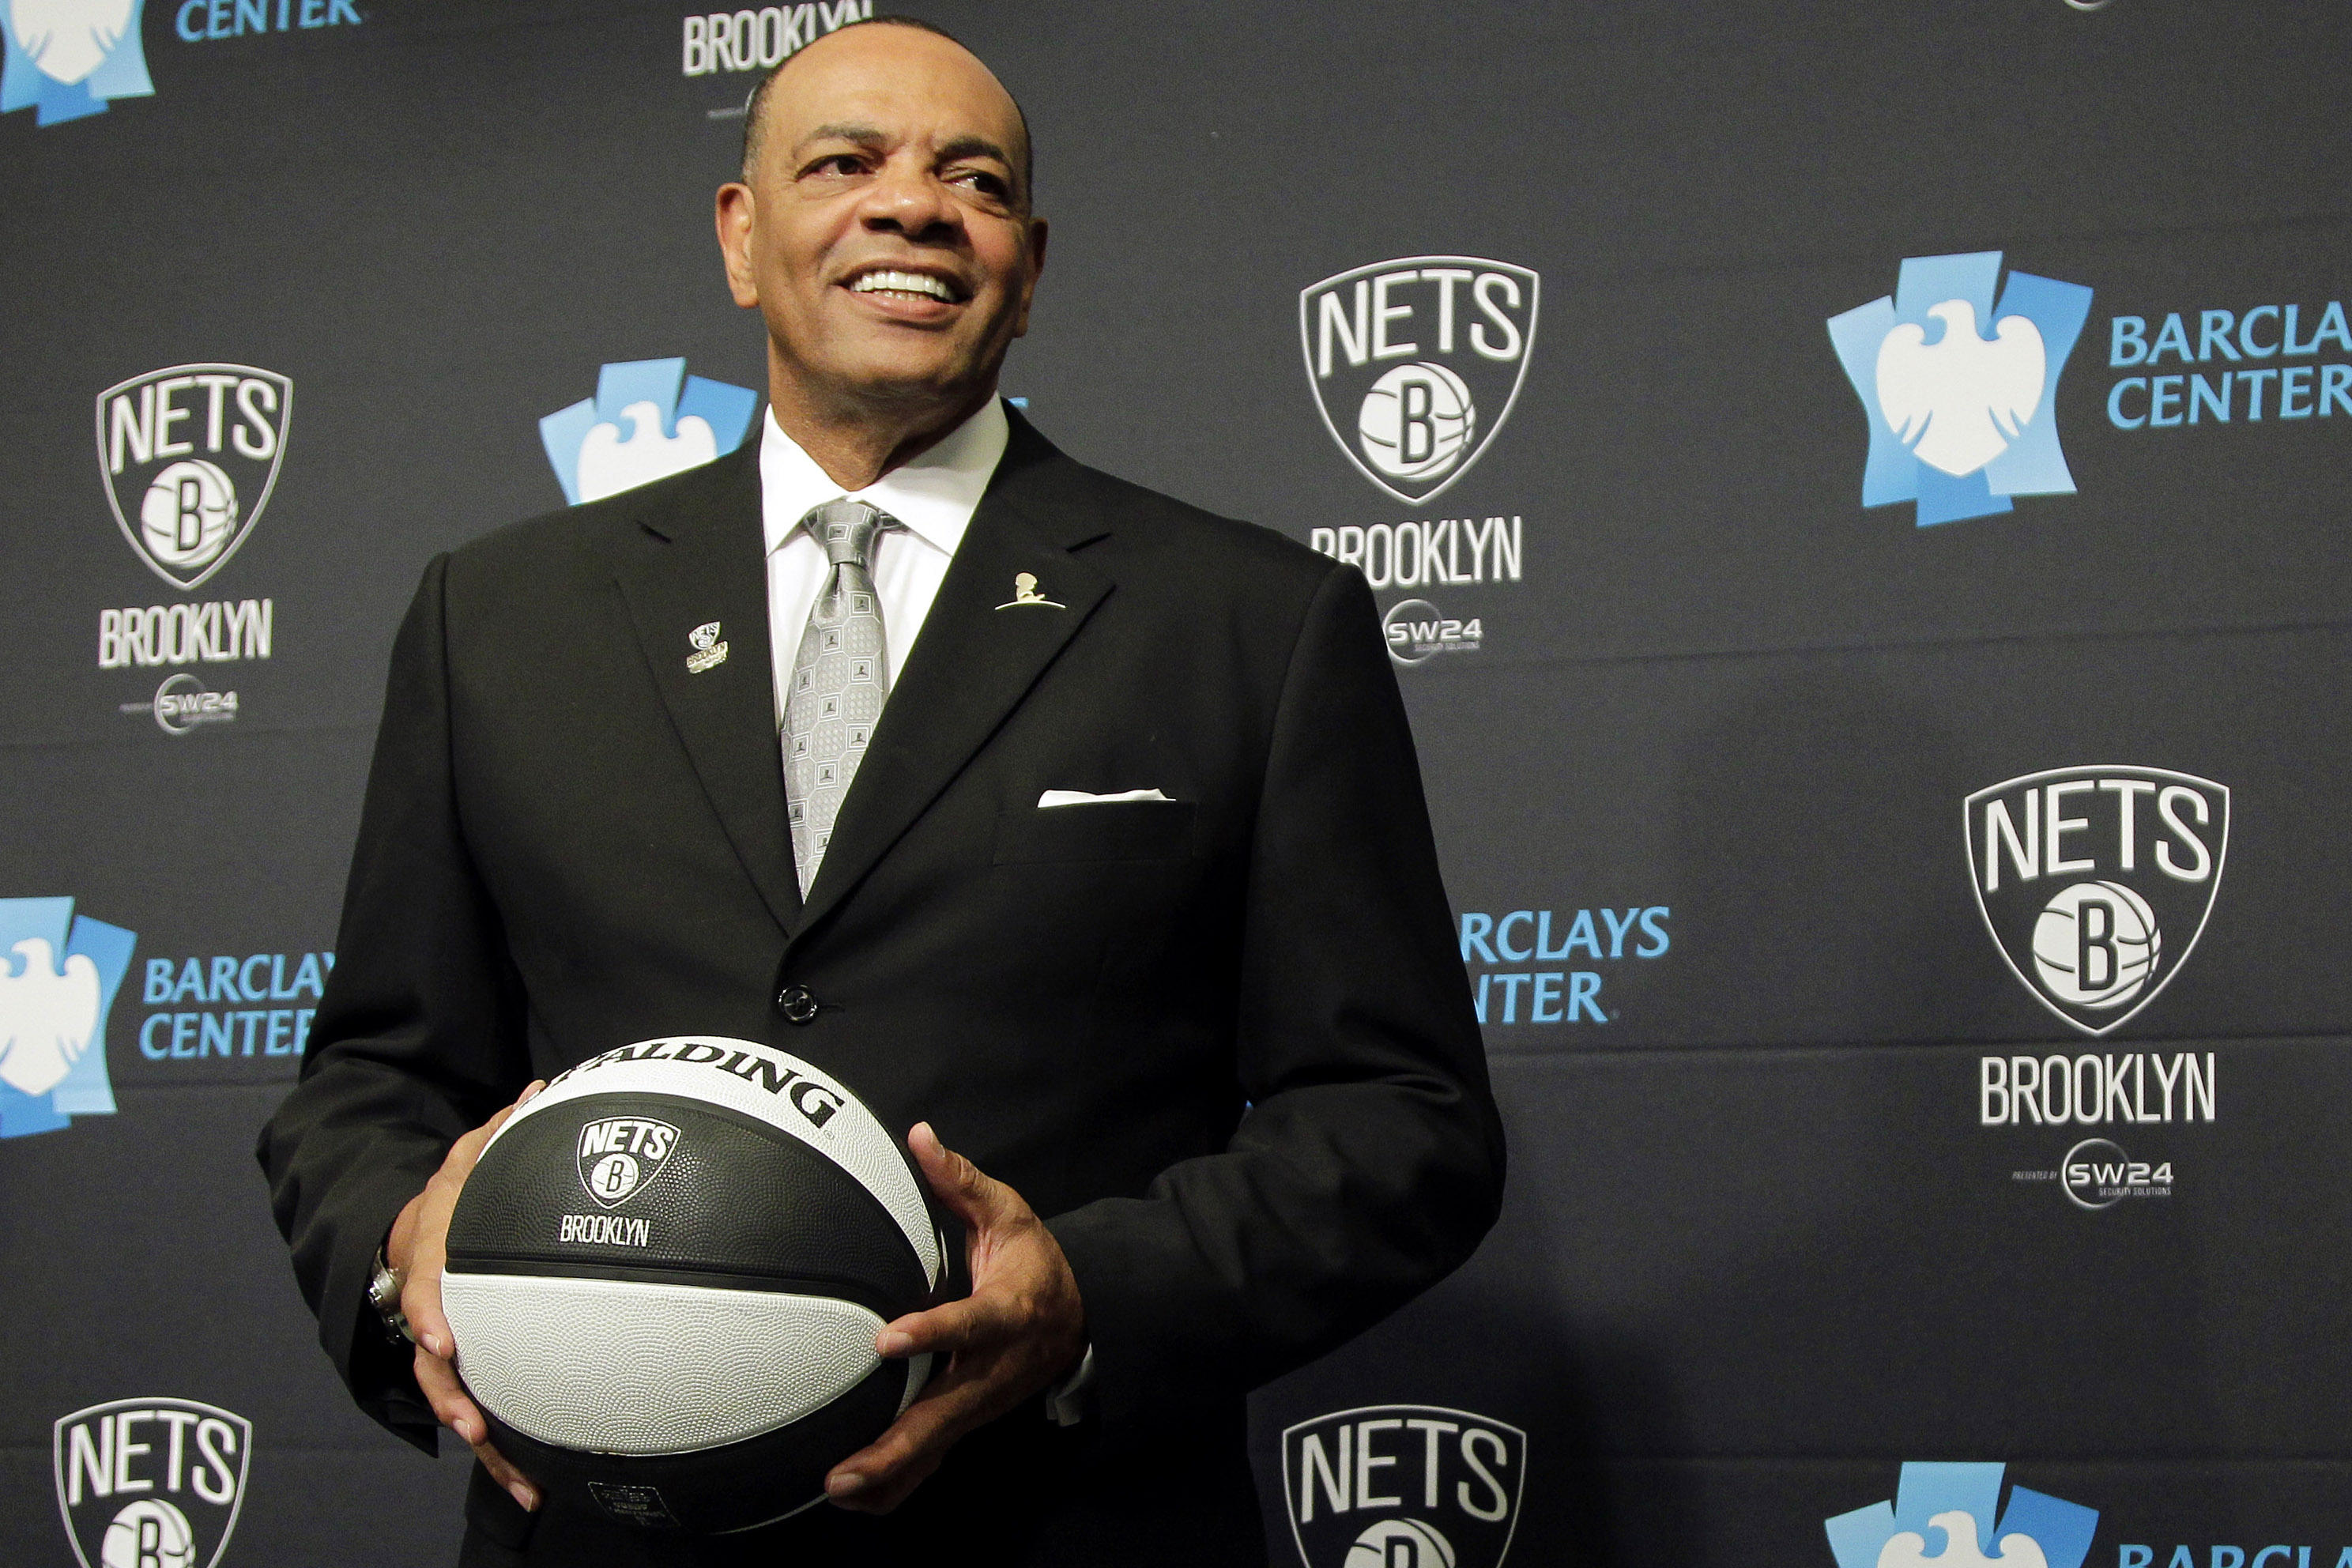 Lionel Hollins Speakerpedia Discover & Follow a World of